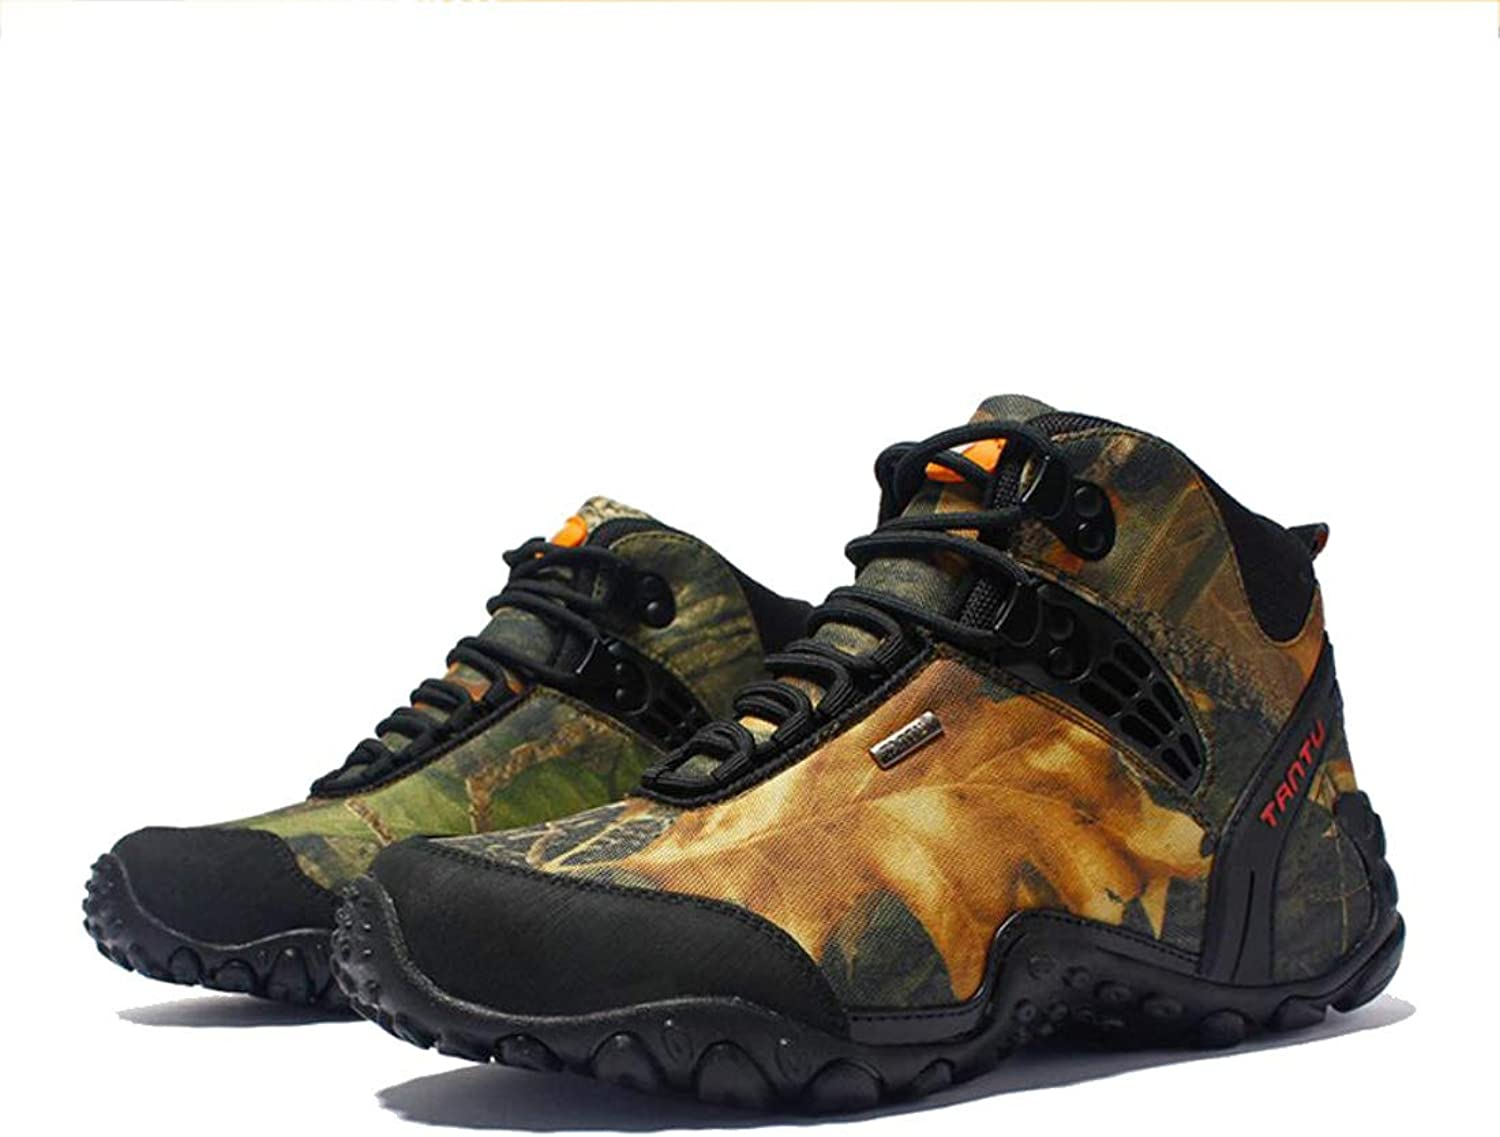 Mens Hiking Boots Waterproof Outdoor Camouflage Climbing Mountain Camping shoes